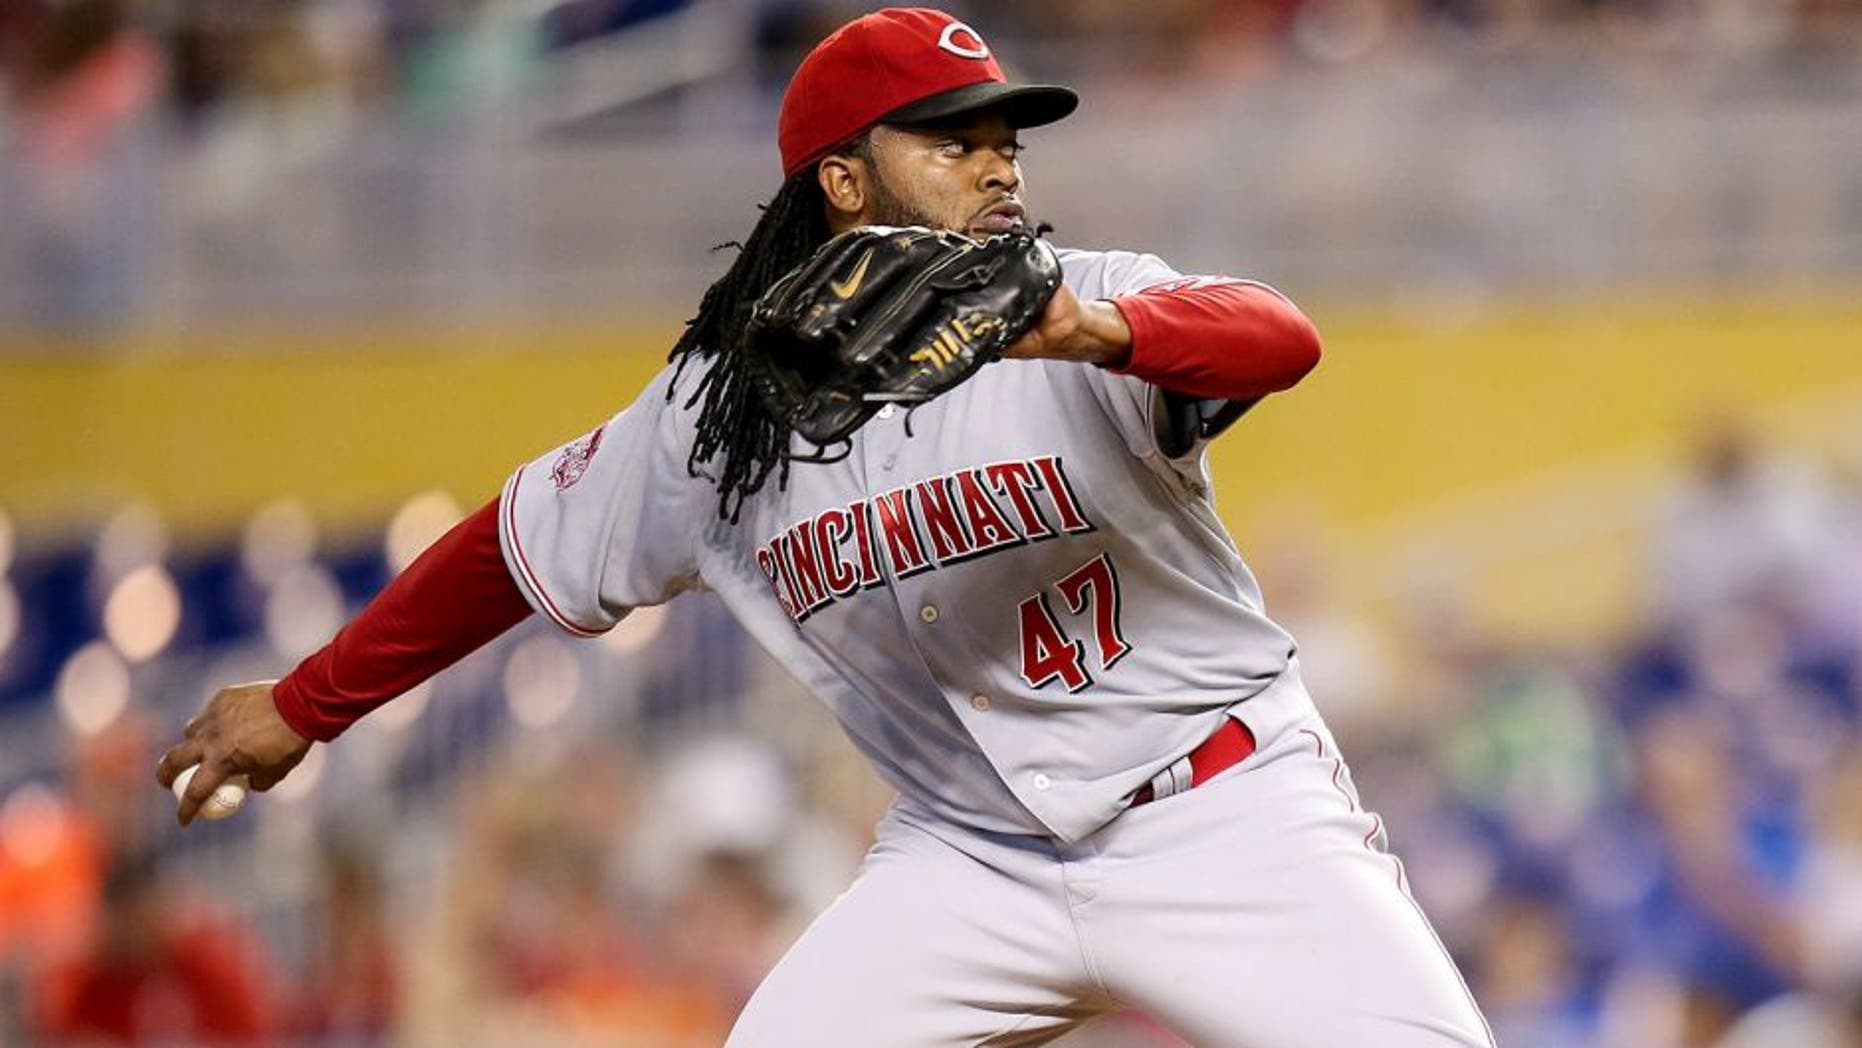 MIAMI, FL - JULY 12: Johnny Cueto #47 of the Cincinnati Reds pitches during the first inning of the game against the Miami Marlins at Marlins Park on July 12, 2015 in Miami, Florida. (Photo by Rob Foldy/Getty Images)